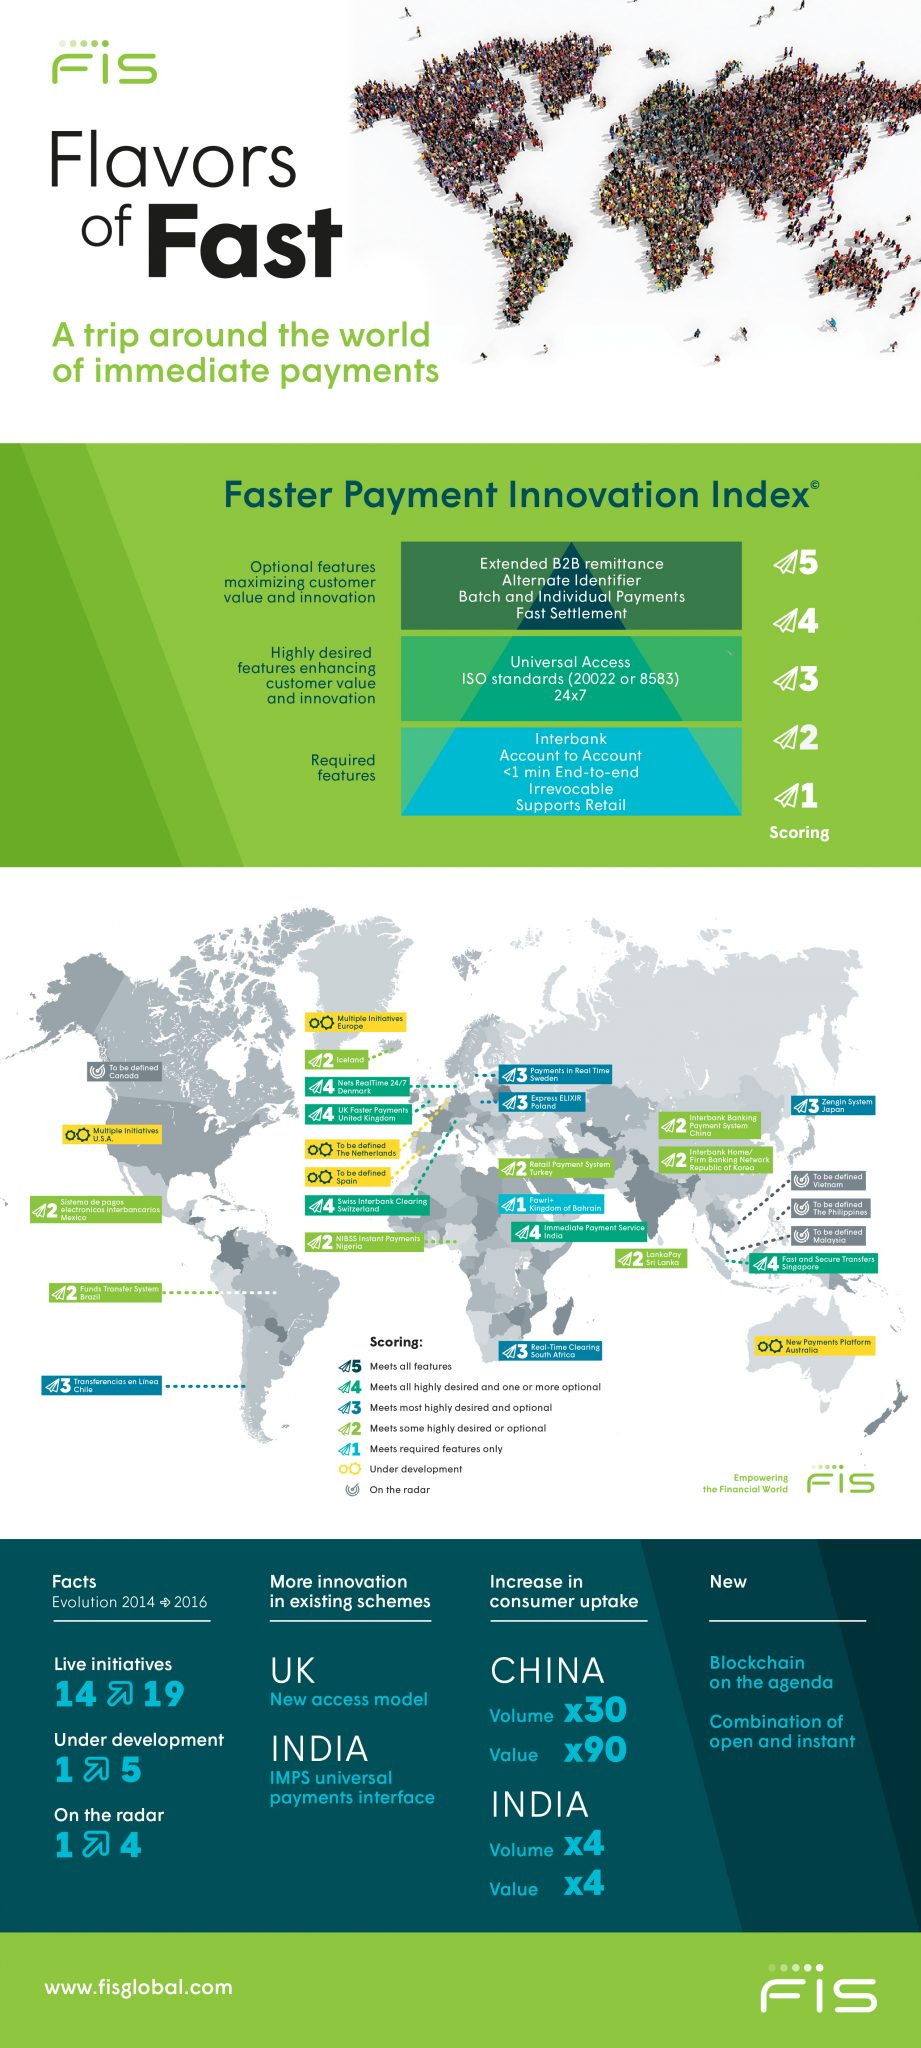 FIS-Flavors of Fast Infographic Hi Res